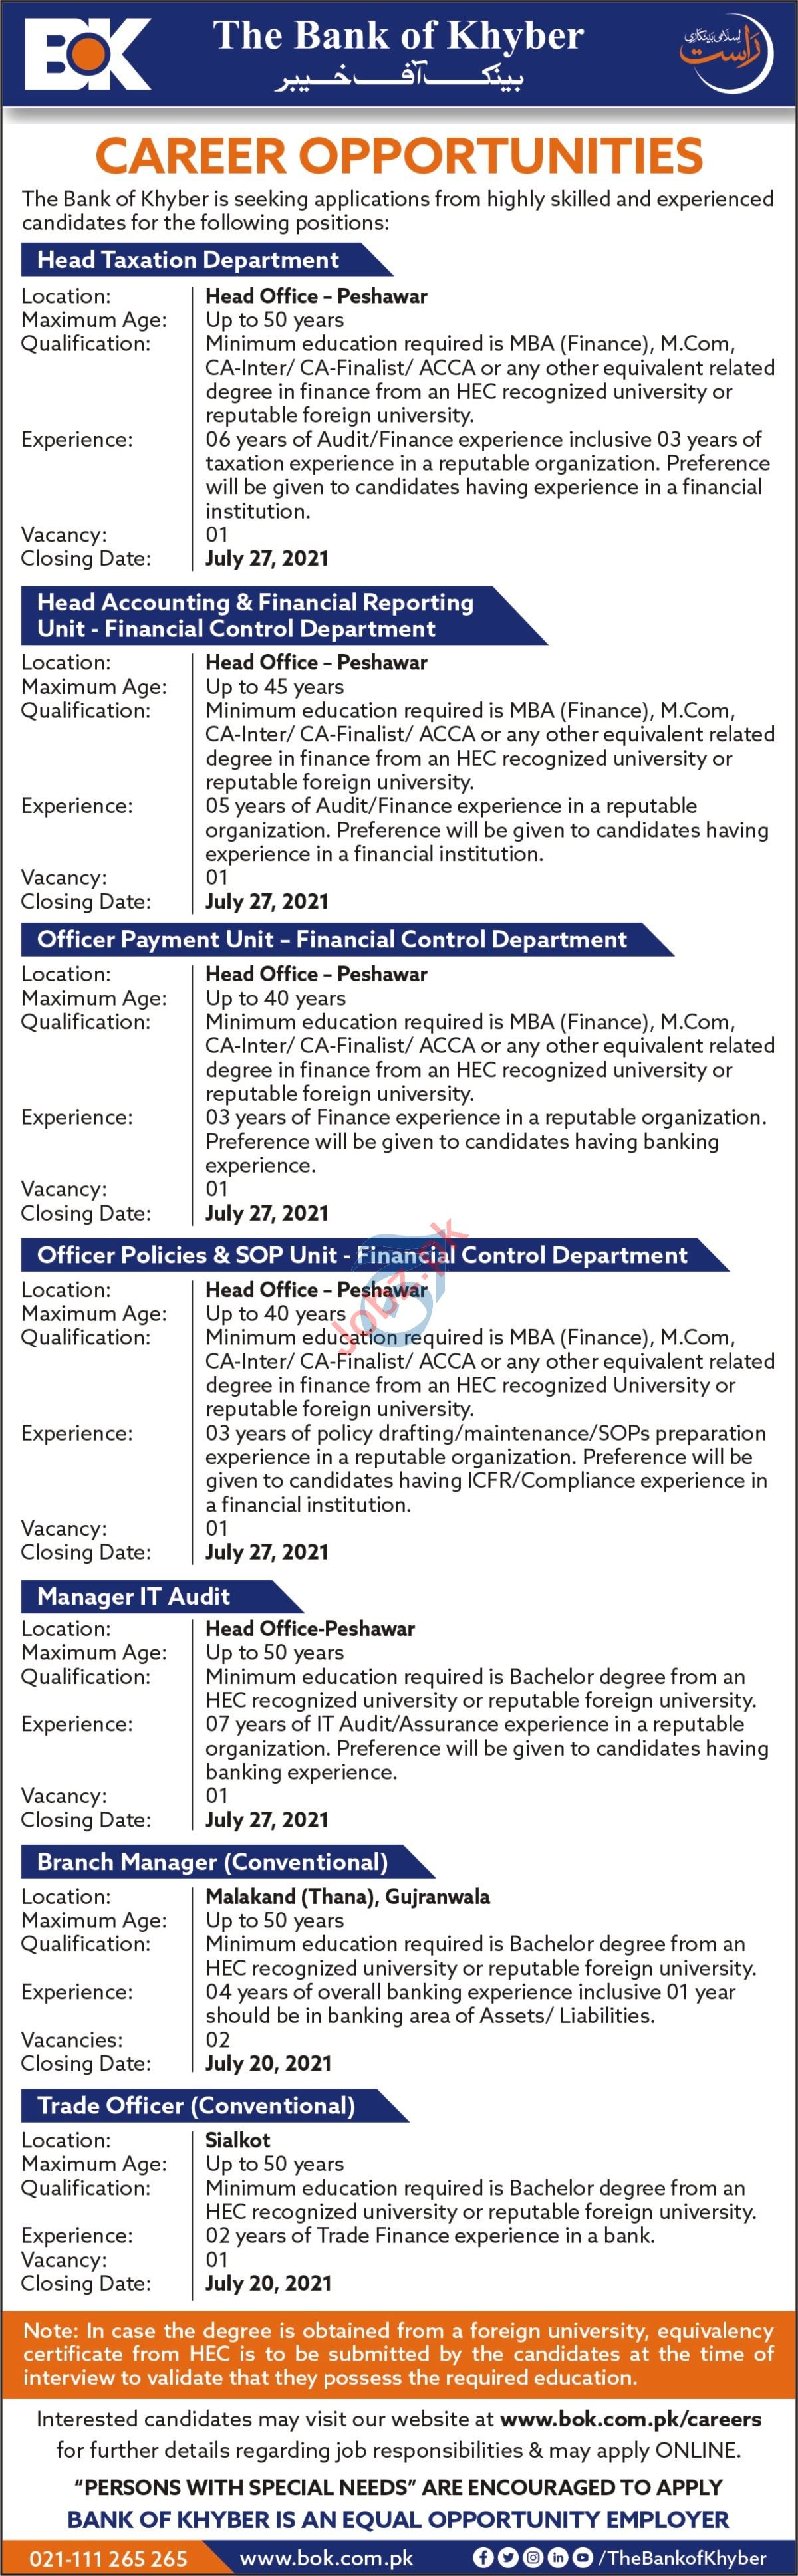 The Bank of Khyber BOK Jobs 2021 for Manager & Trade Officer